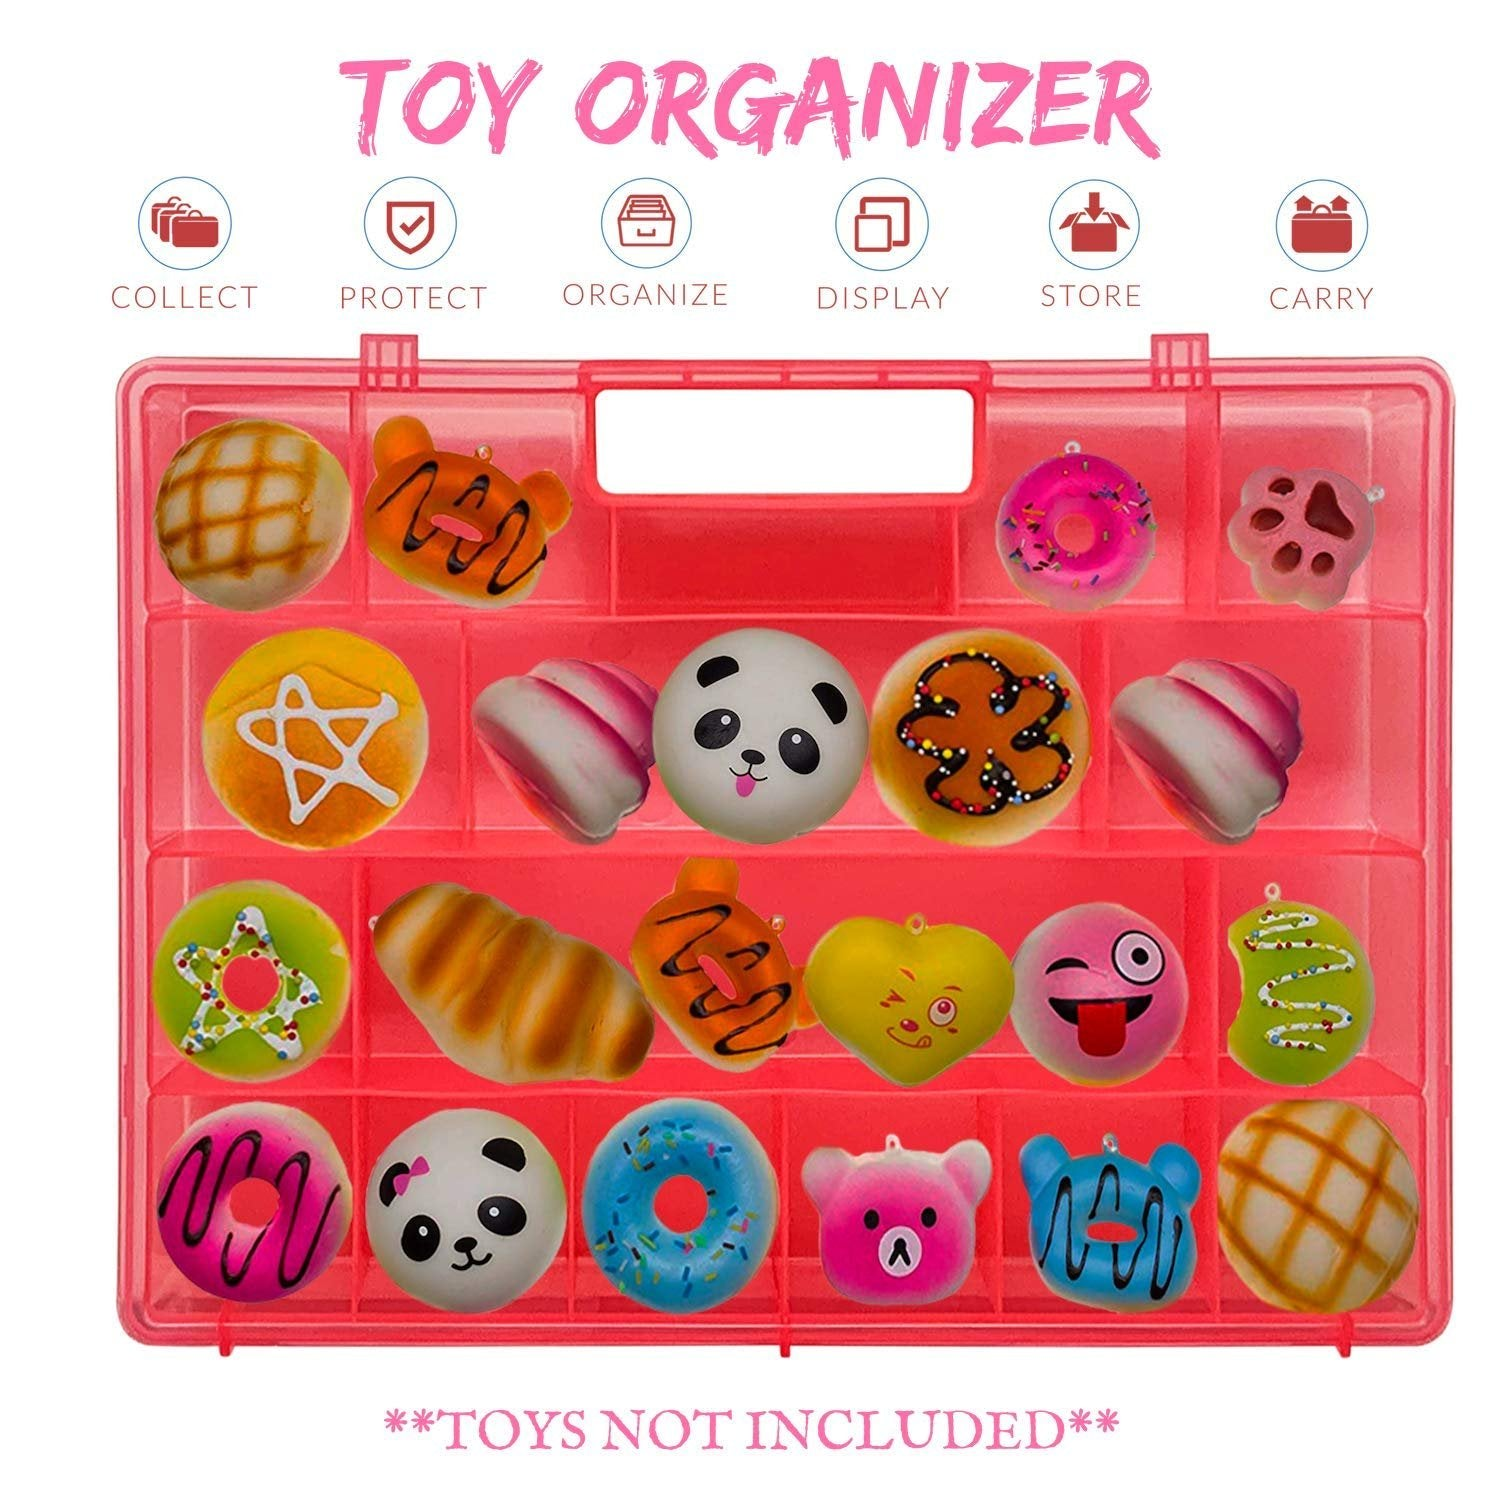 Life Made Better, New, Fun Pink Toy Storage Carrying Box, Compatible with Squishies, Kid-Friendly, Easy to Use Toy Accessories, Created